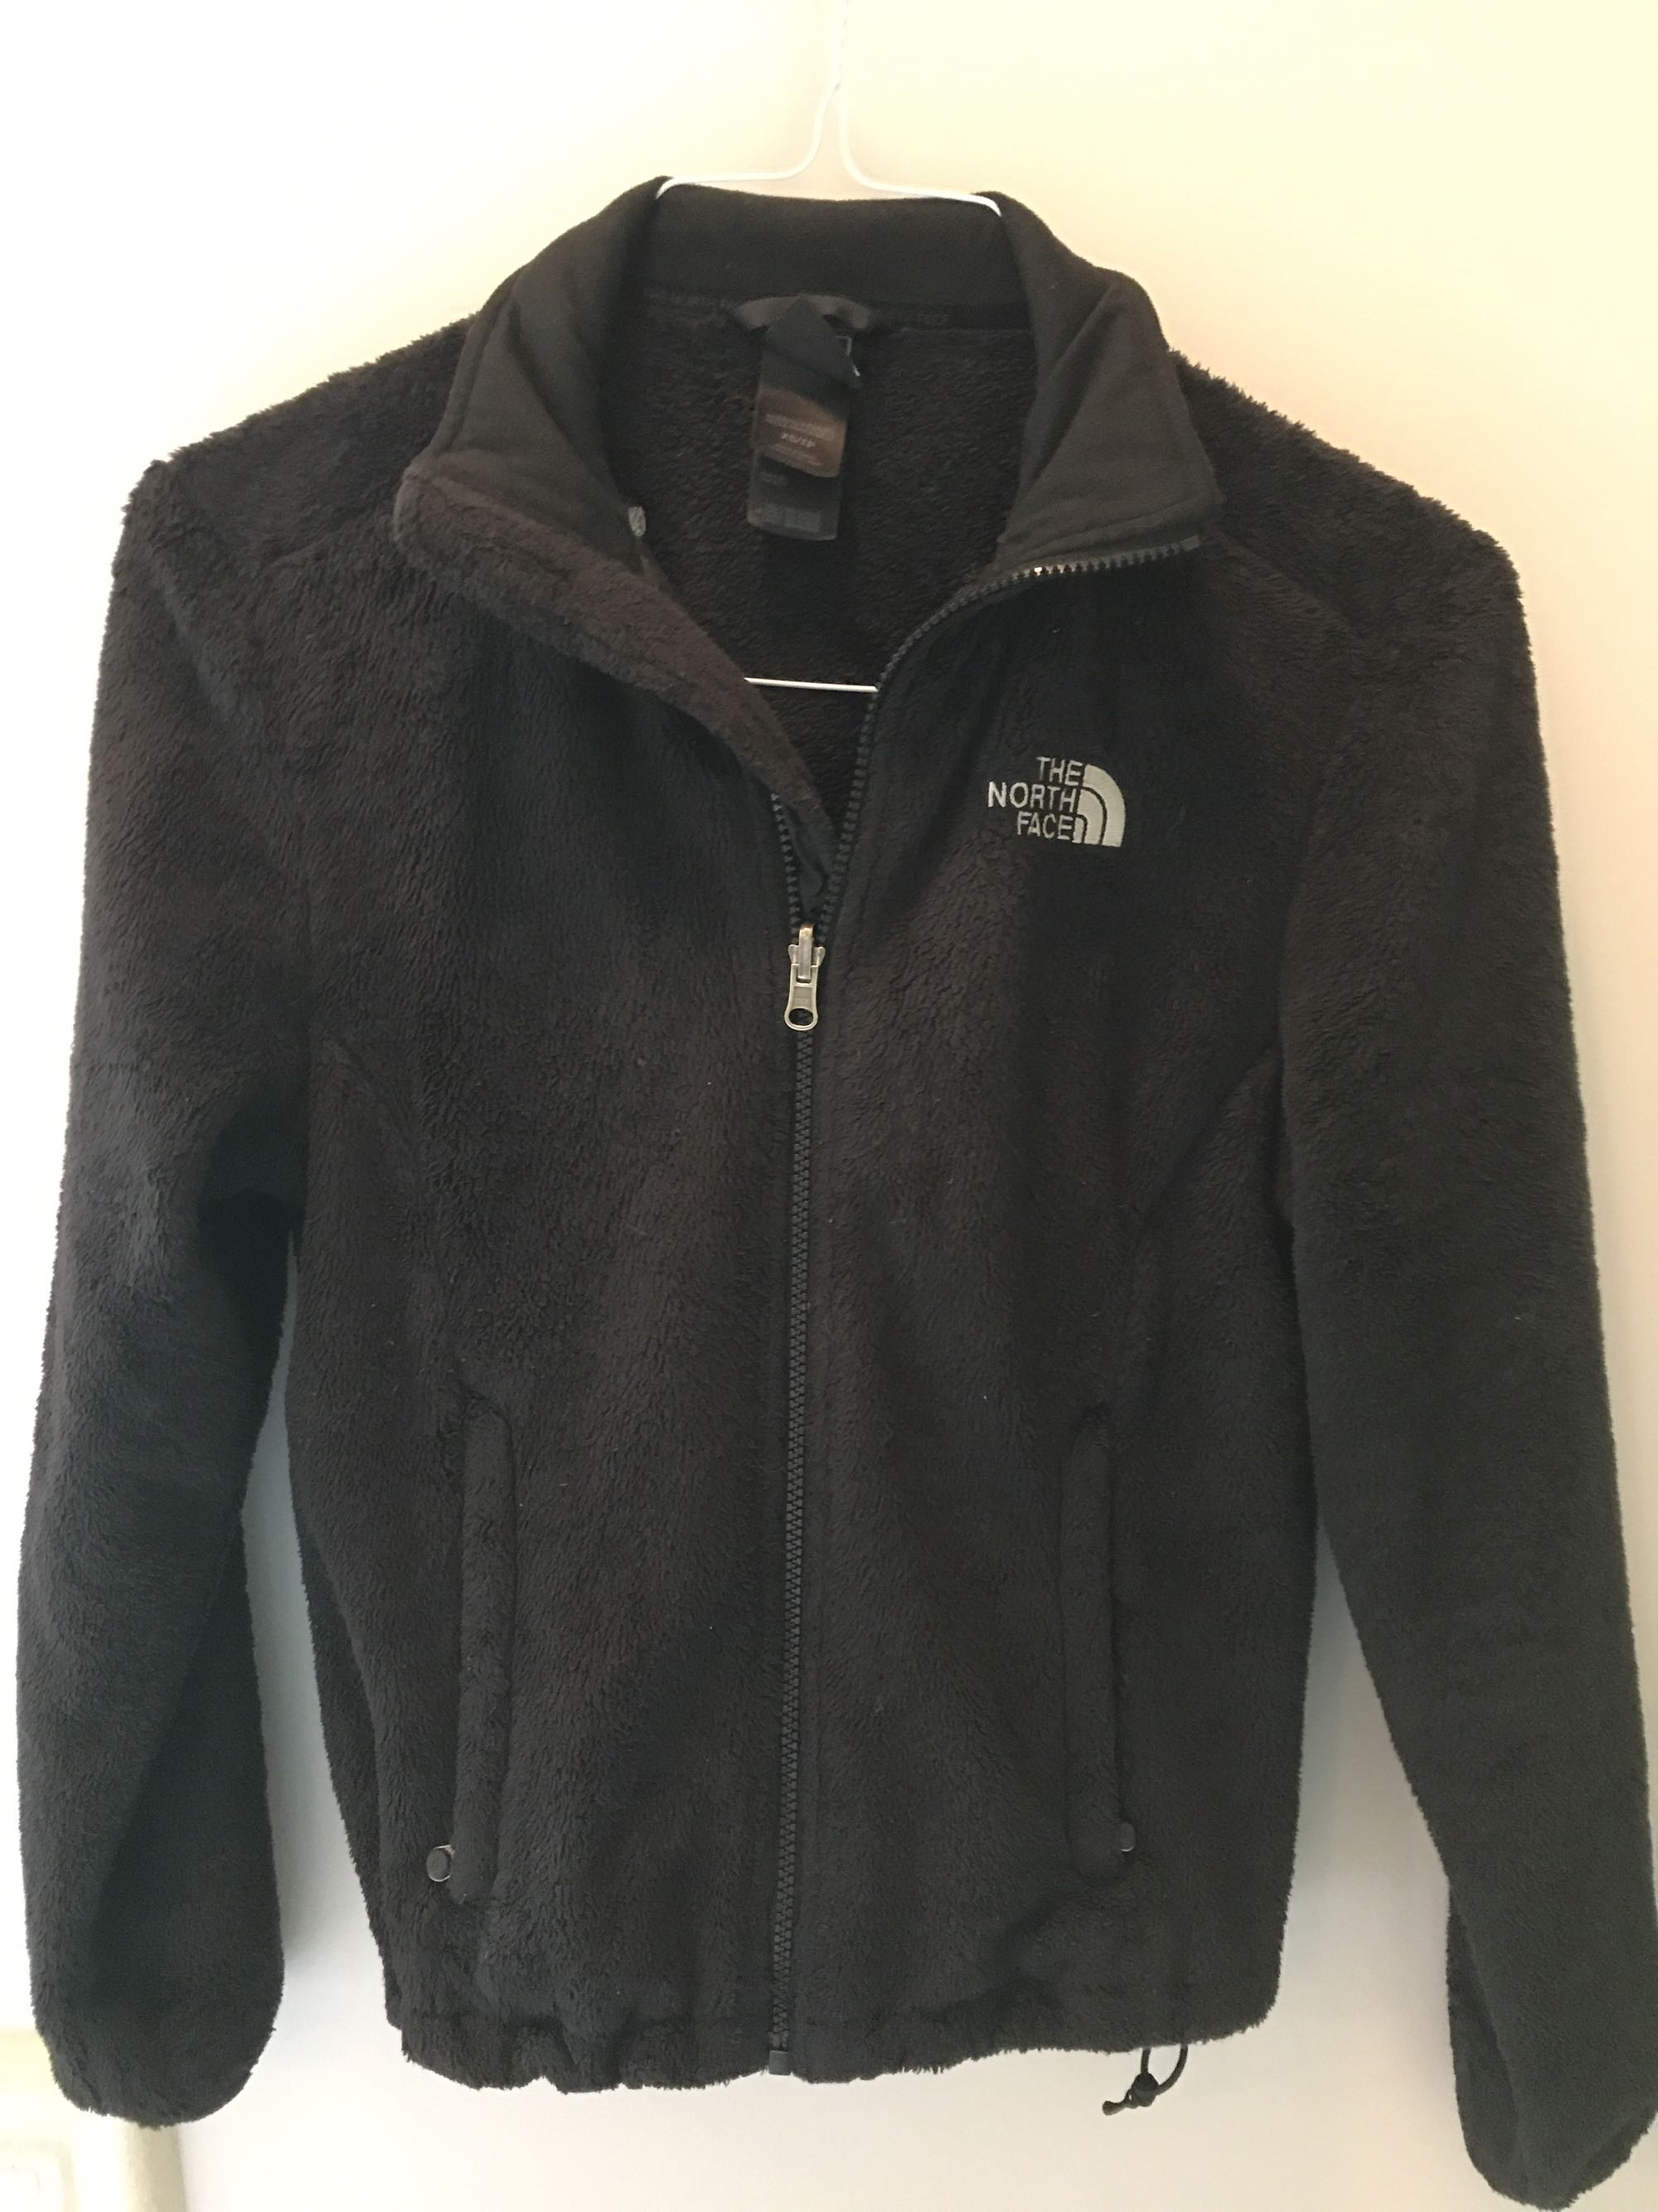 The North Face Women's XS jacket